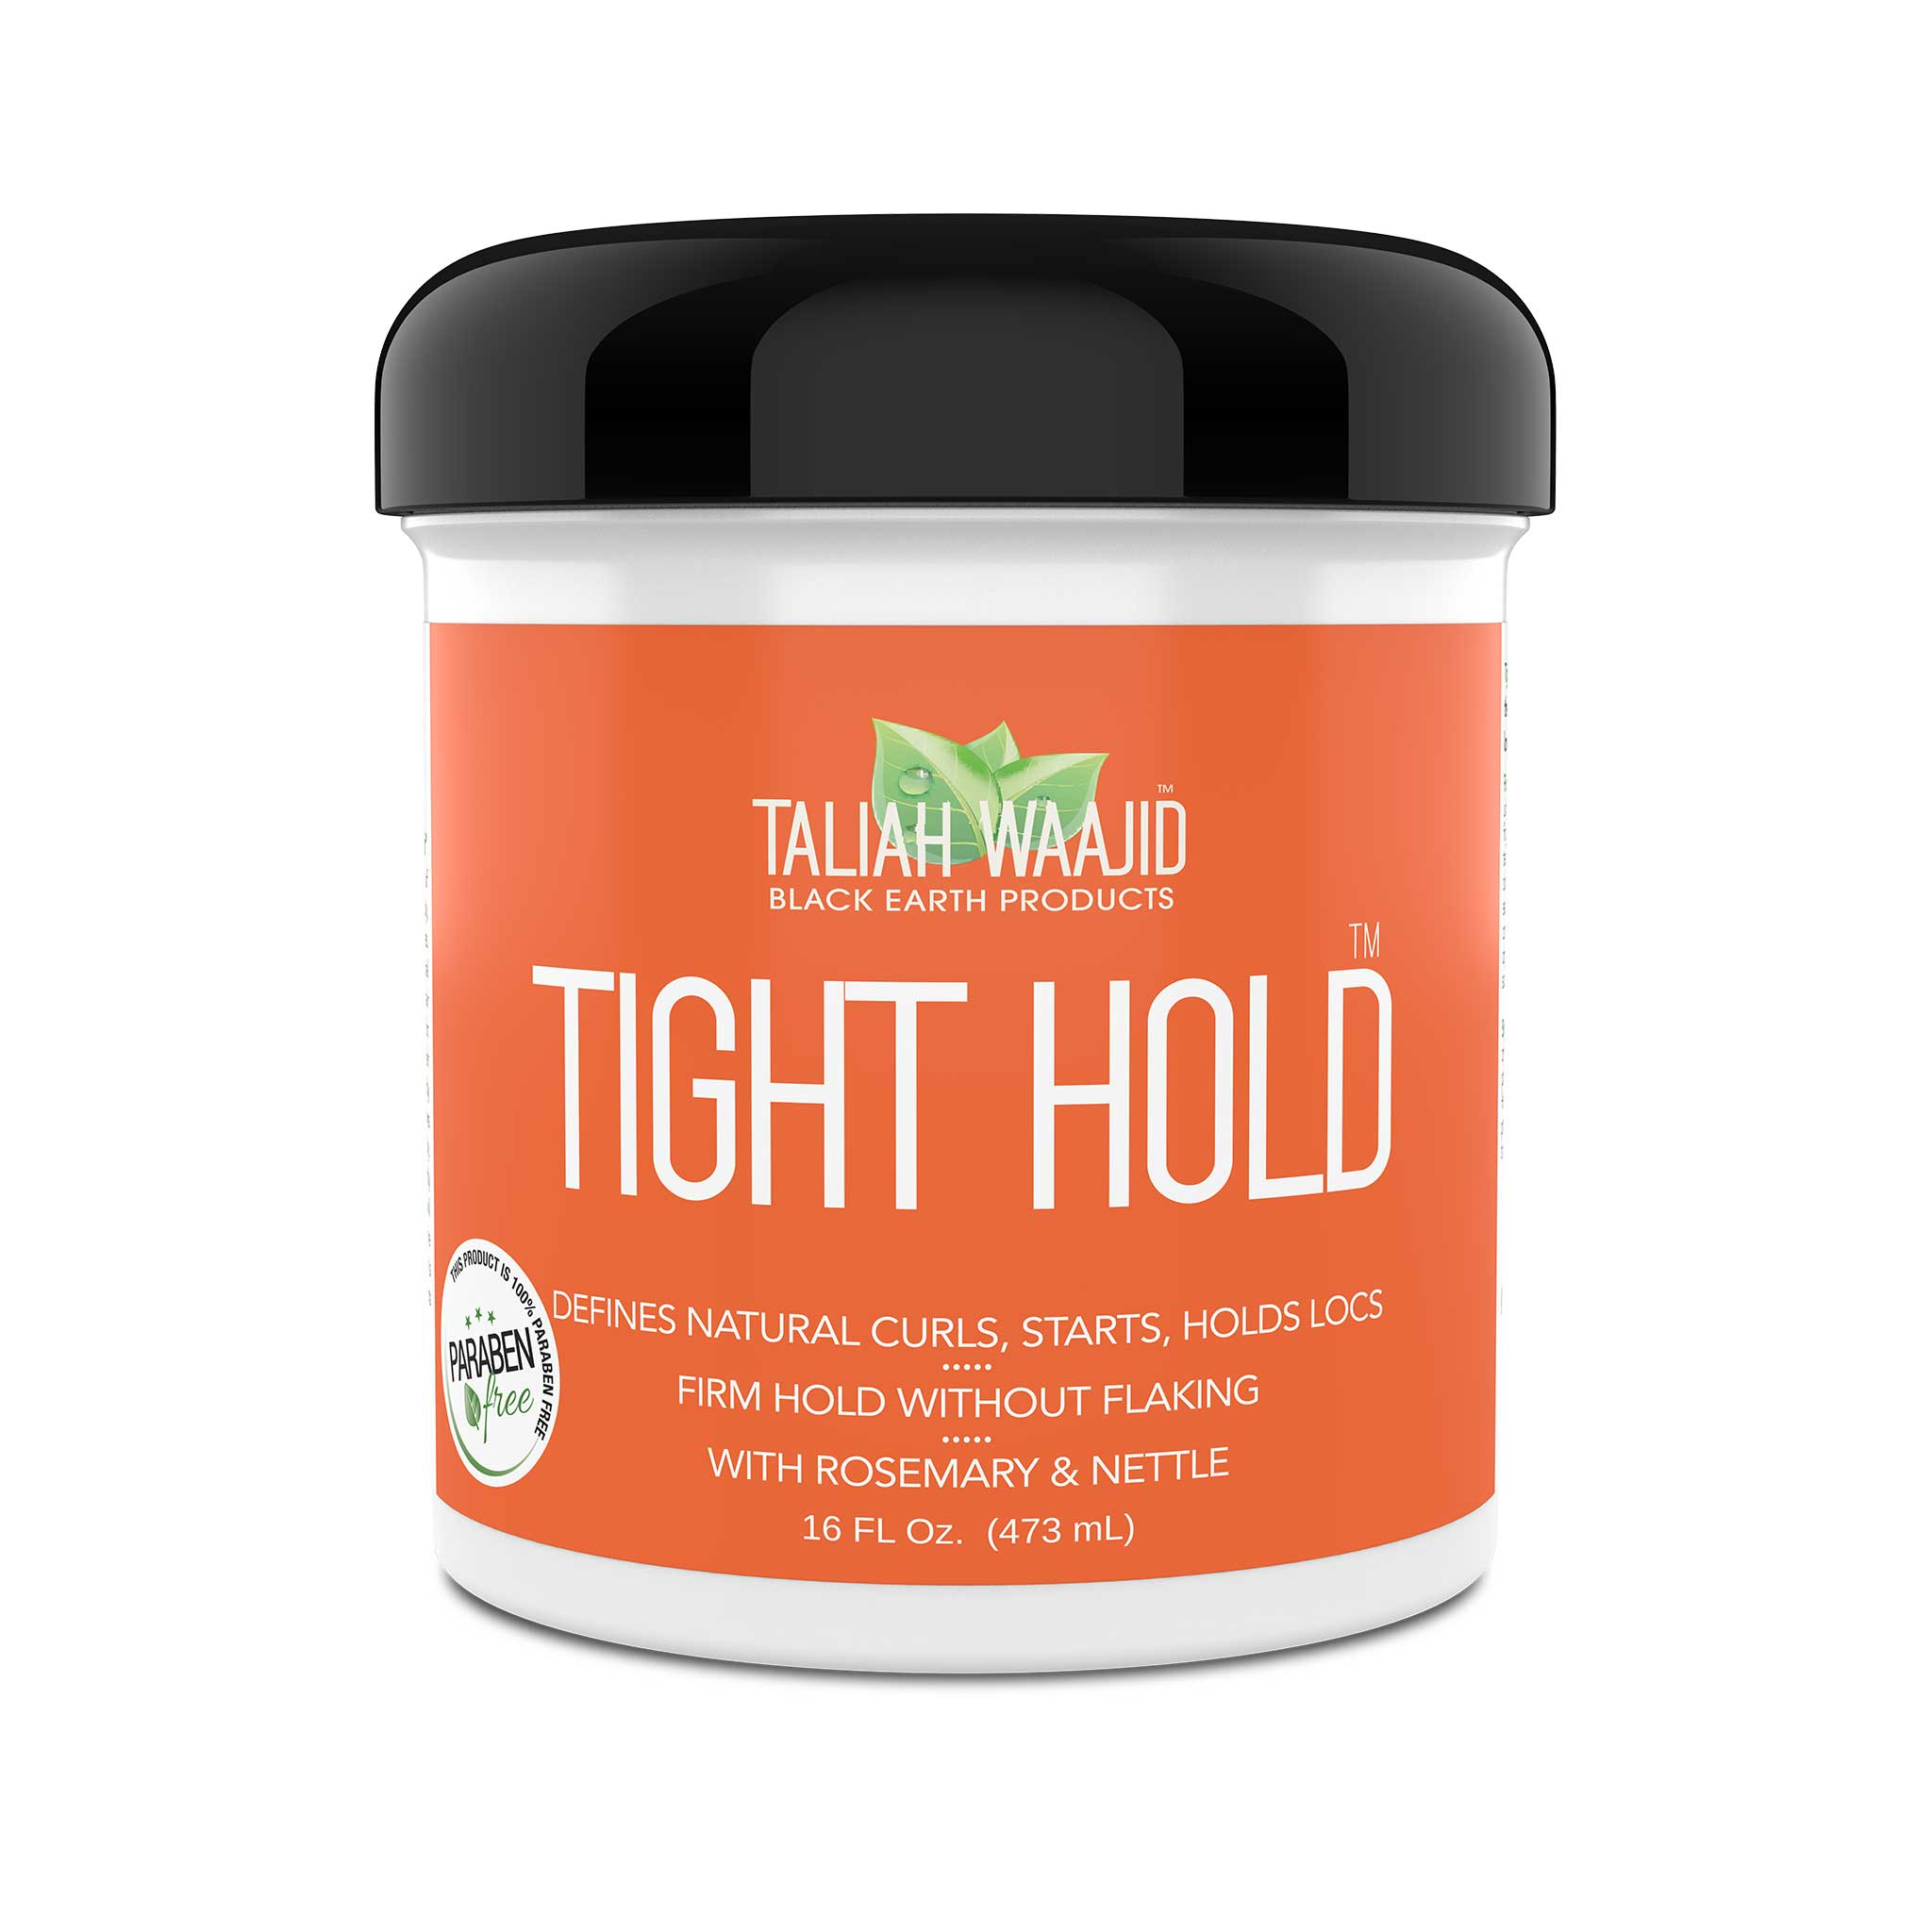 Black Earth Products Tight Hold 16oz